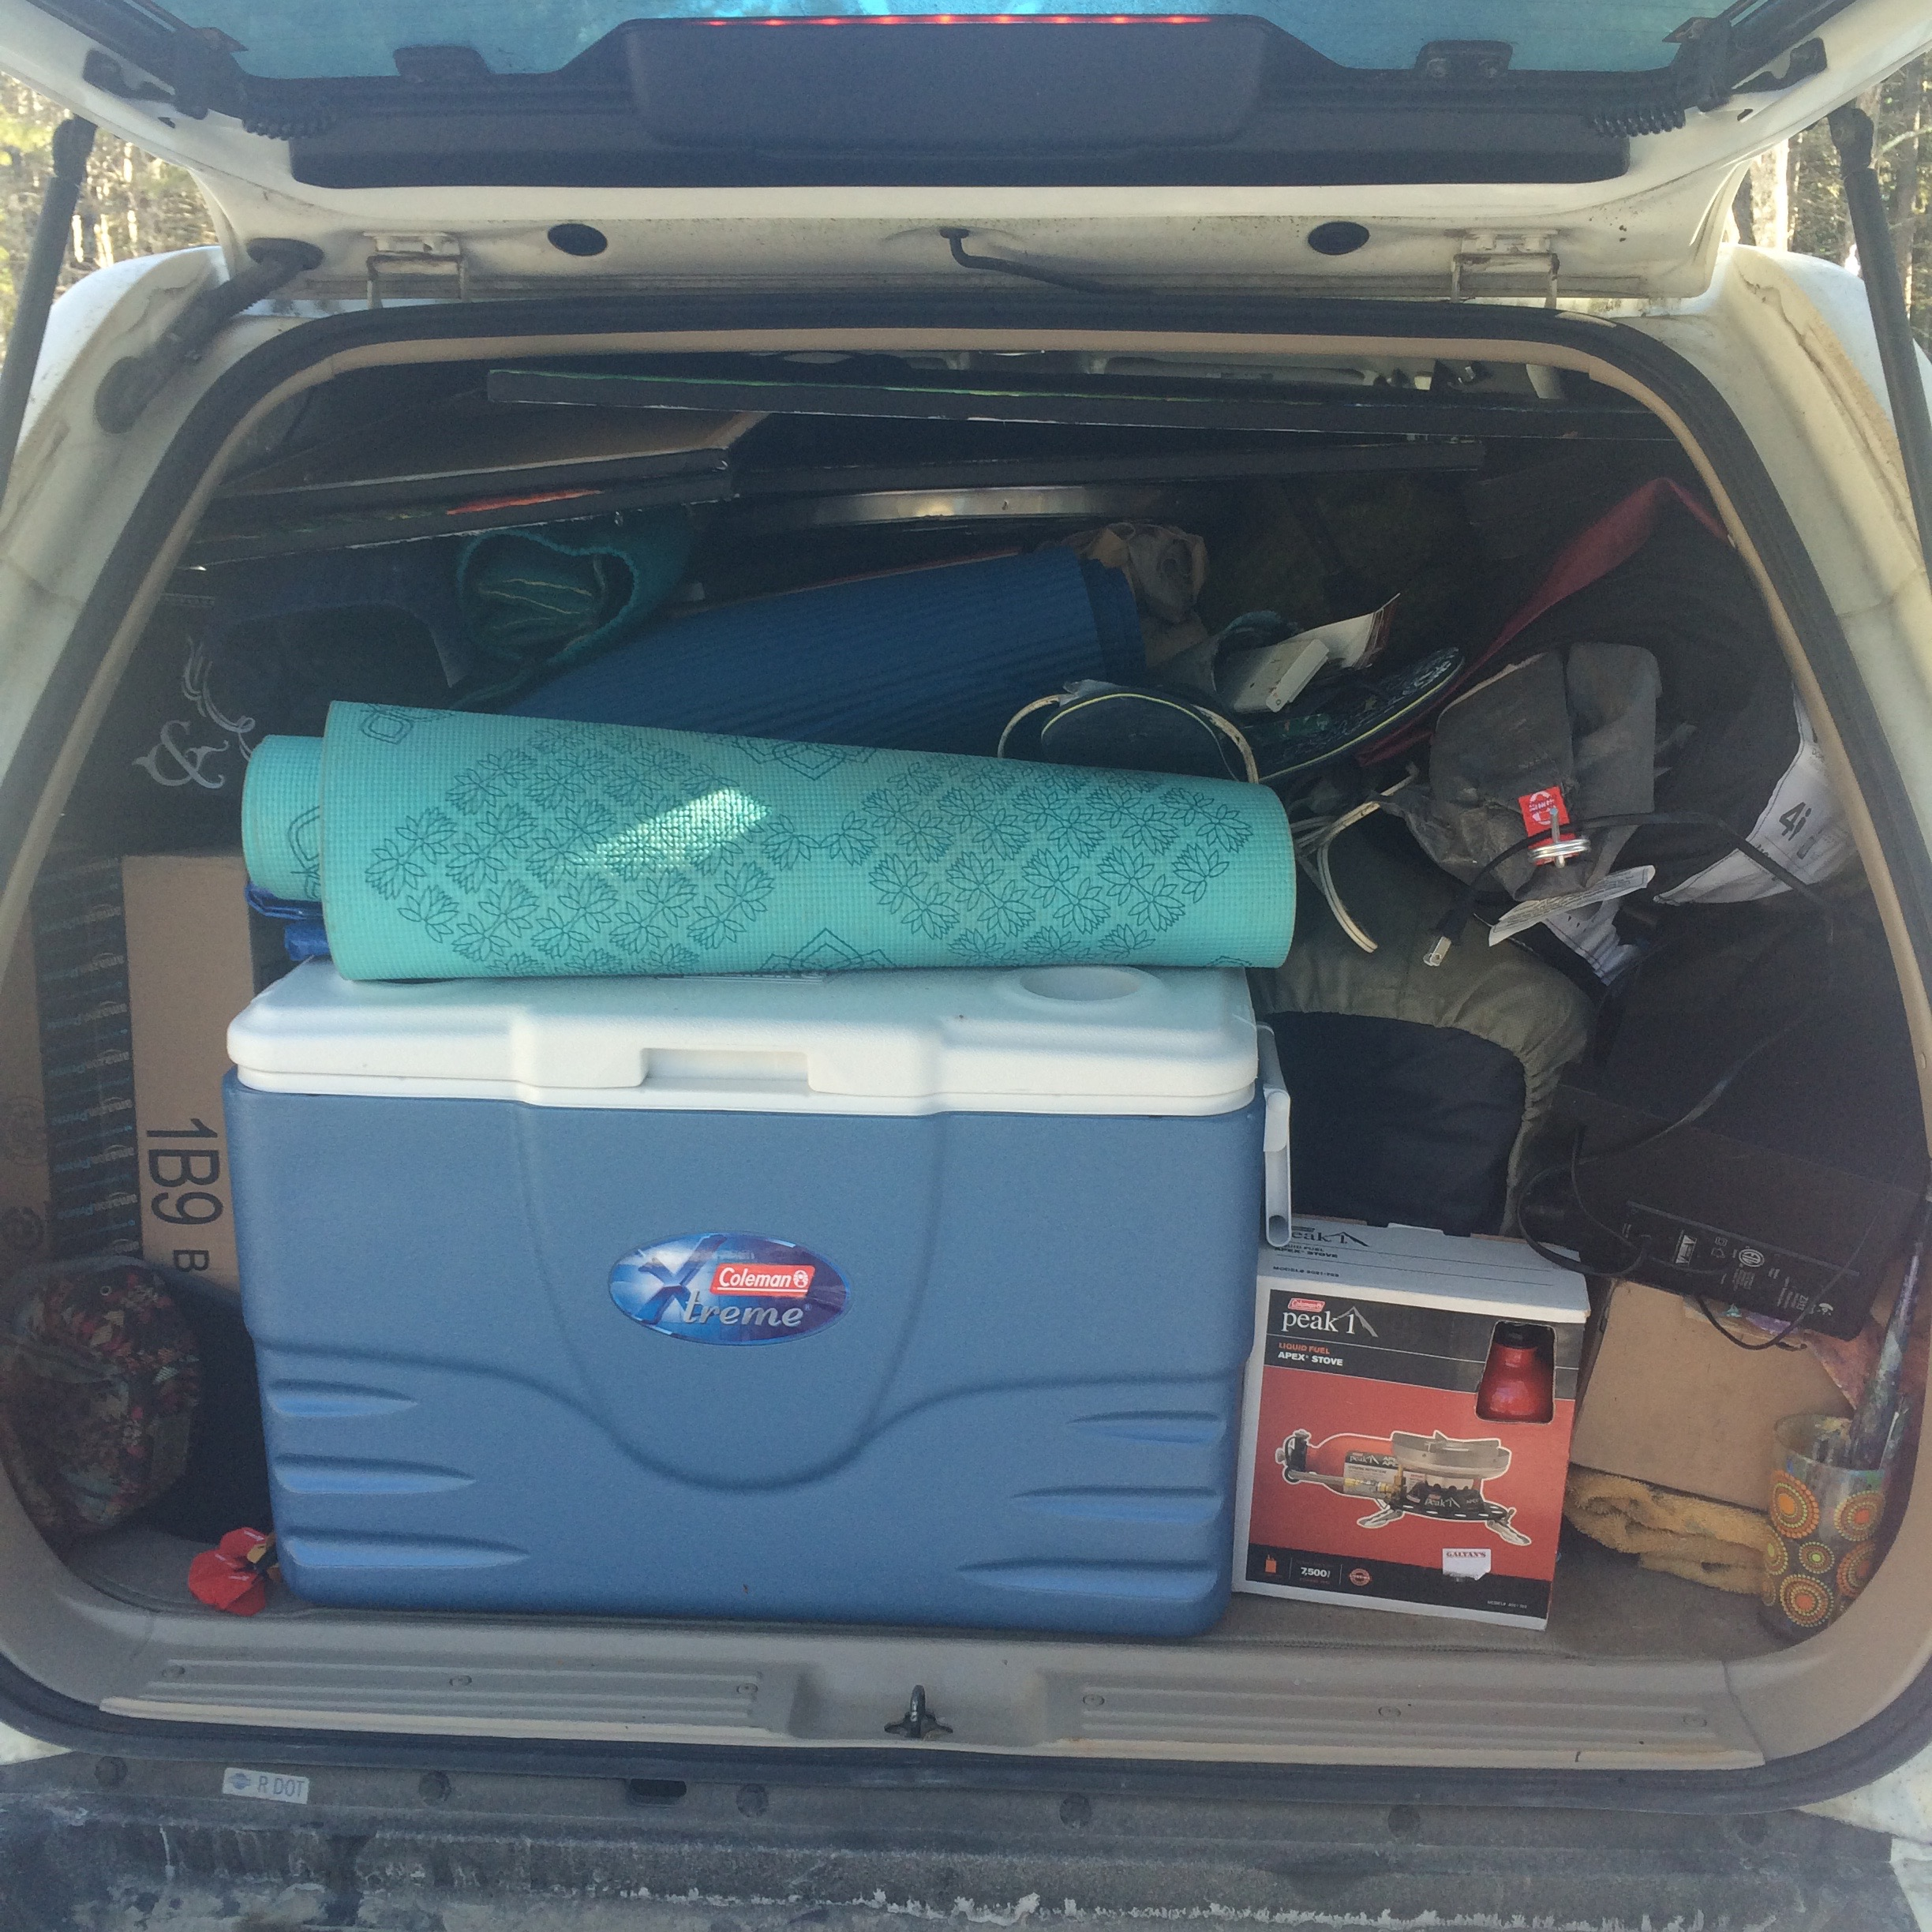 The car all packed up!